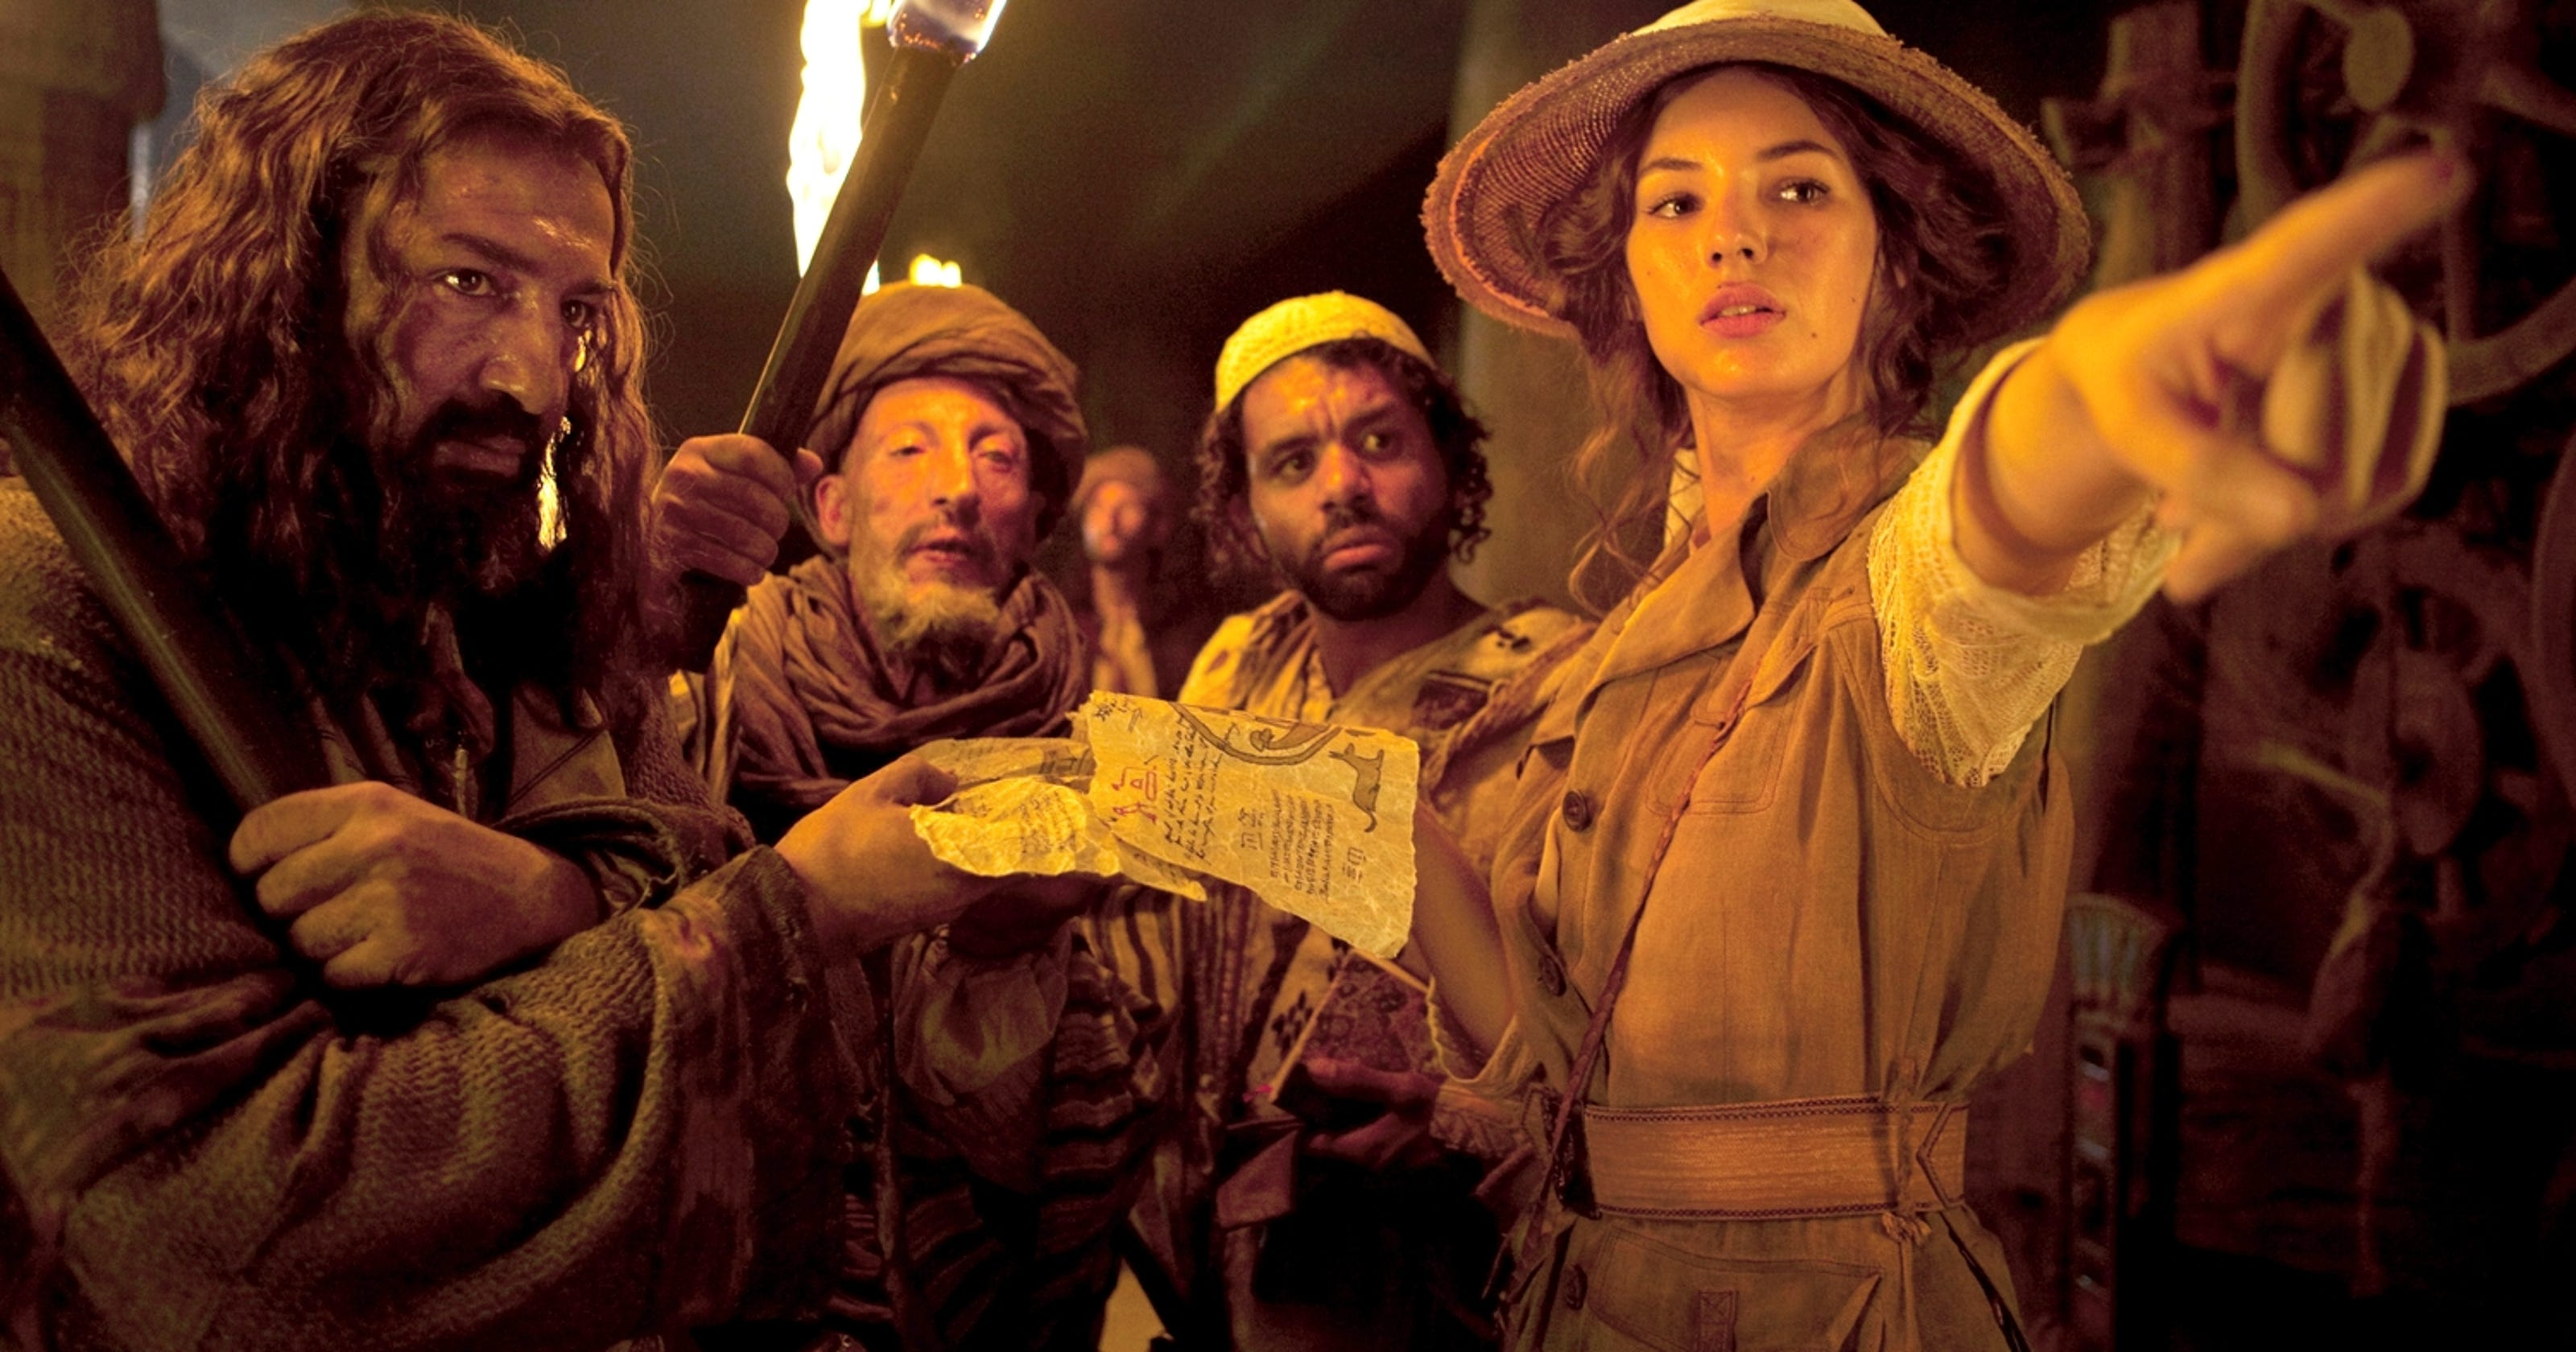 Tomb-raiding adventures with (l to r) Moussa Maaskri, Mostefa Zerguine, Youssef Hajdi, and Adele Blanc-Sec (Louise Bourgoin) in The Extraordinary Adventures of Adele Blanc-Sec (2010)